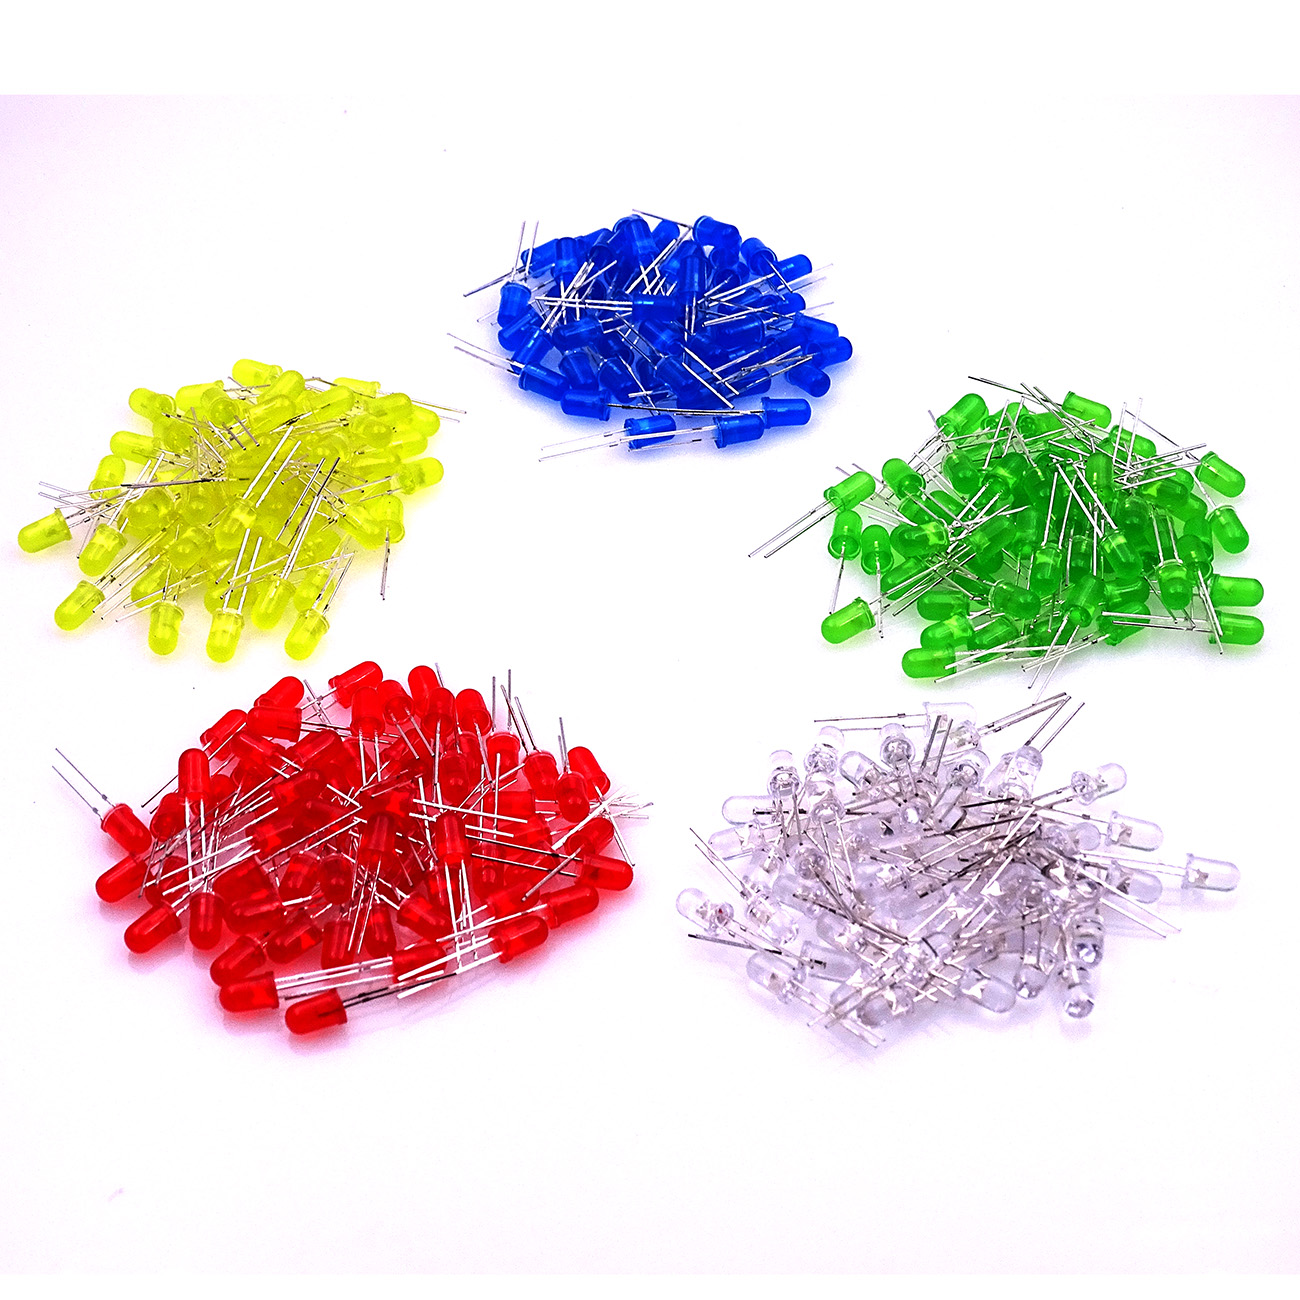 100PC / batch 3MM 5MM LED kit mixed color red green yellow blue white LED DIY LED(China)